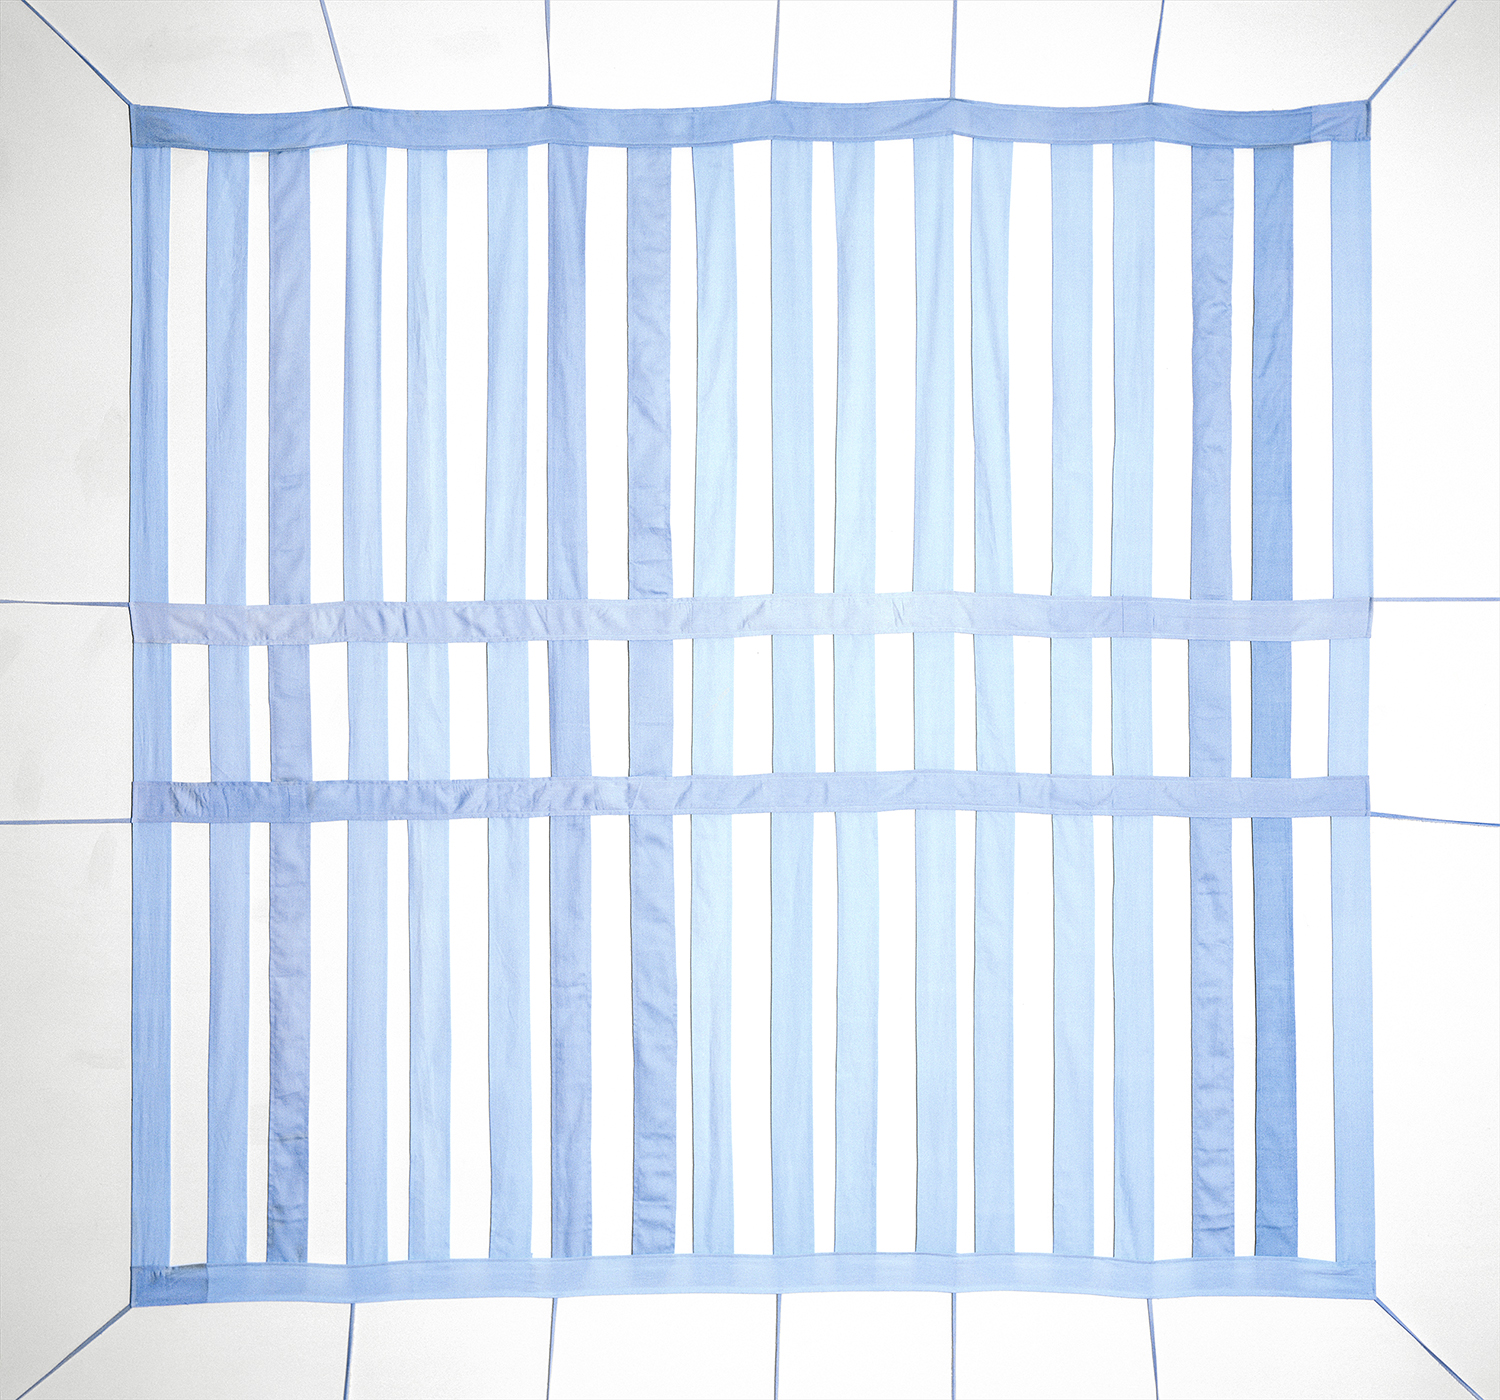 Linda Hofvander, The Partition, 2021, Pigment print, whitewashed frame, museum glass, 142 × 152 cm, edition of 3